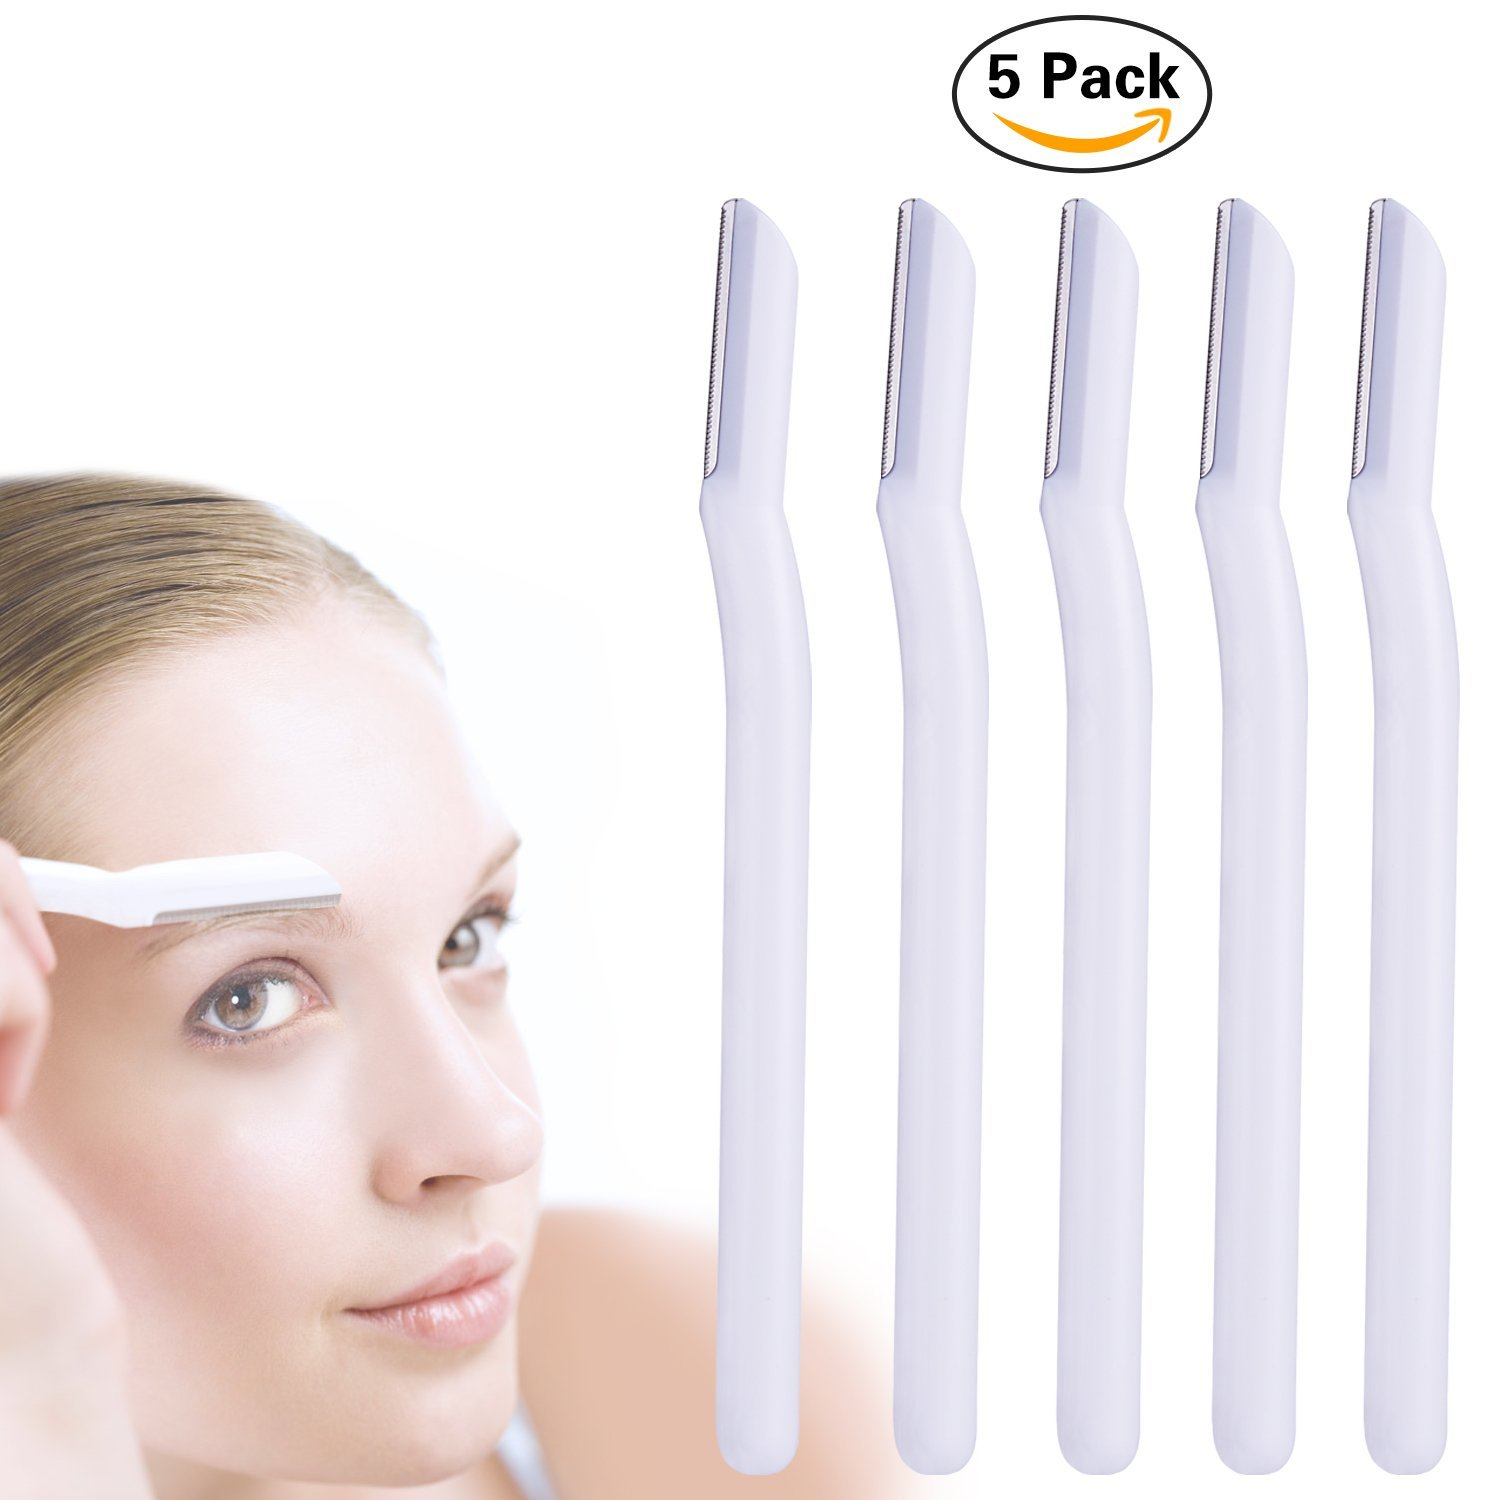 Eyebrow Razor, Miss Gorgeous Eyebrow Trimmer Facial Hair Remover Women's Trimmers Shaving Grooming Kit (5 Pack) St Future